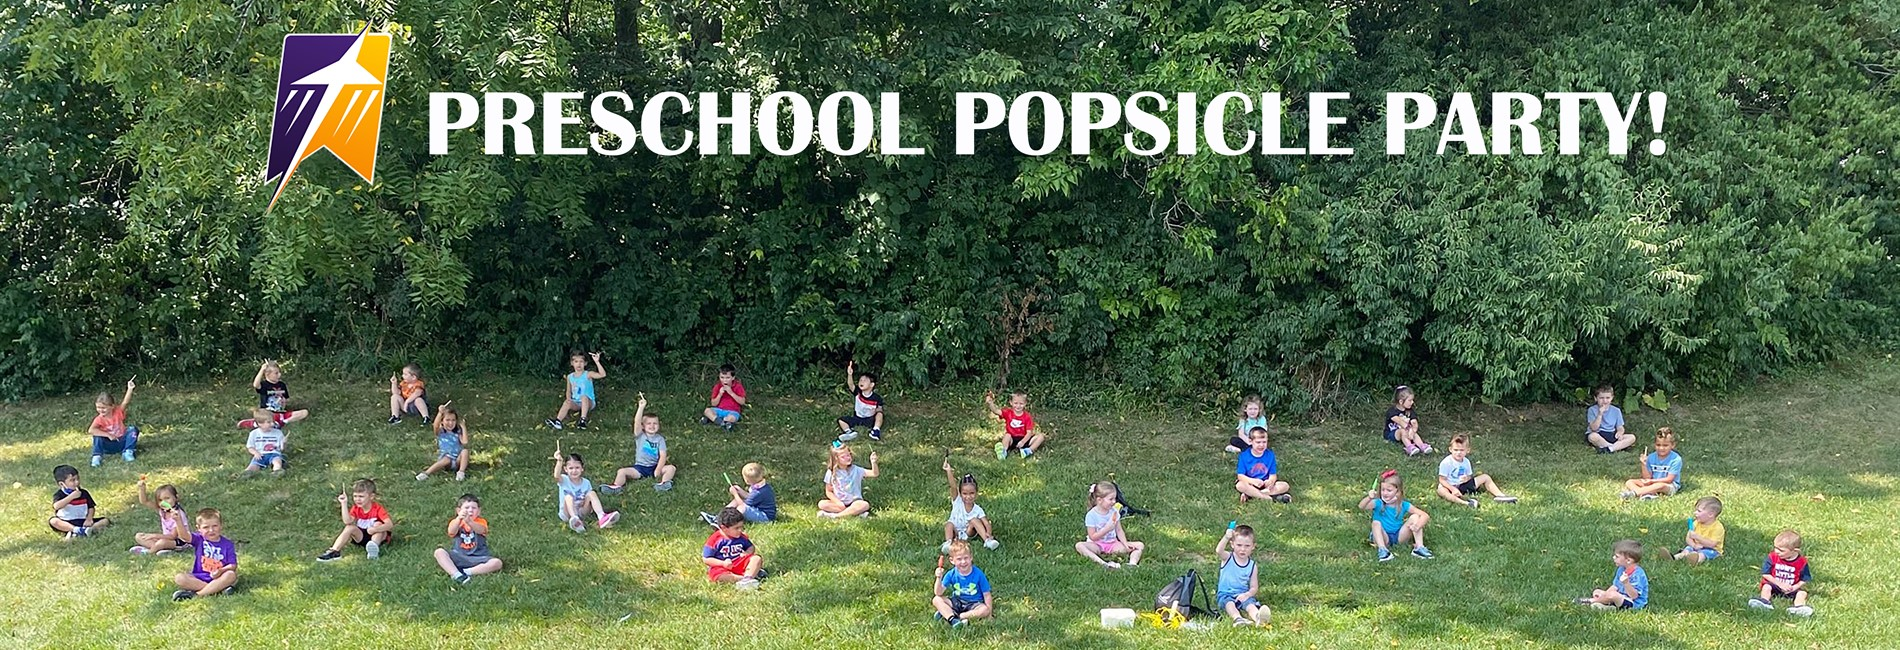 Preschool Popsicle Party